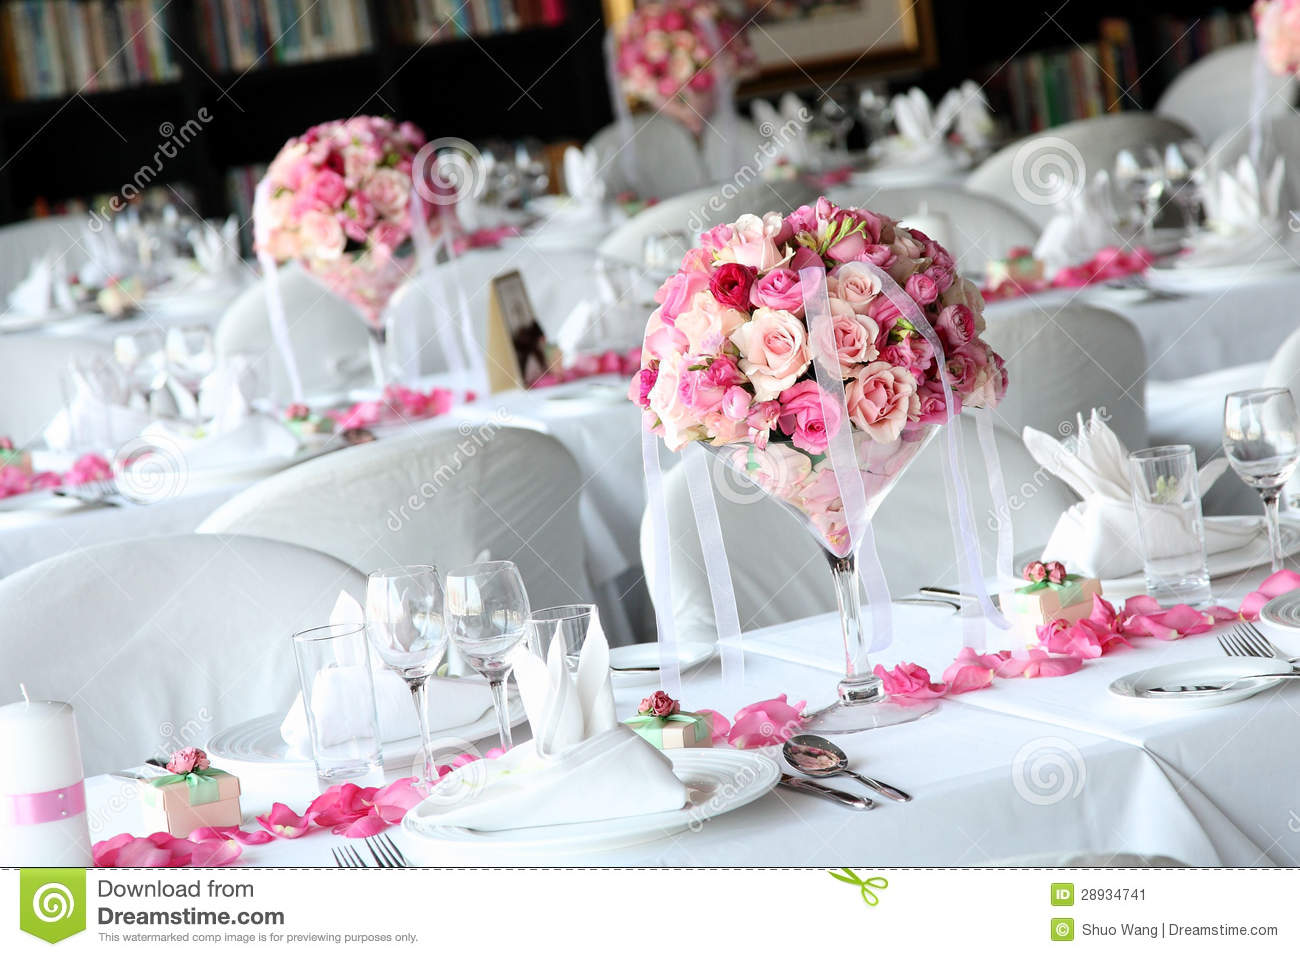 Wedding Table Stock Image - Image: 28934741